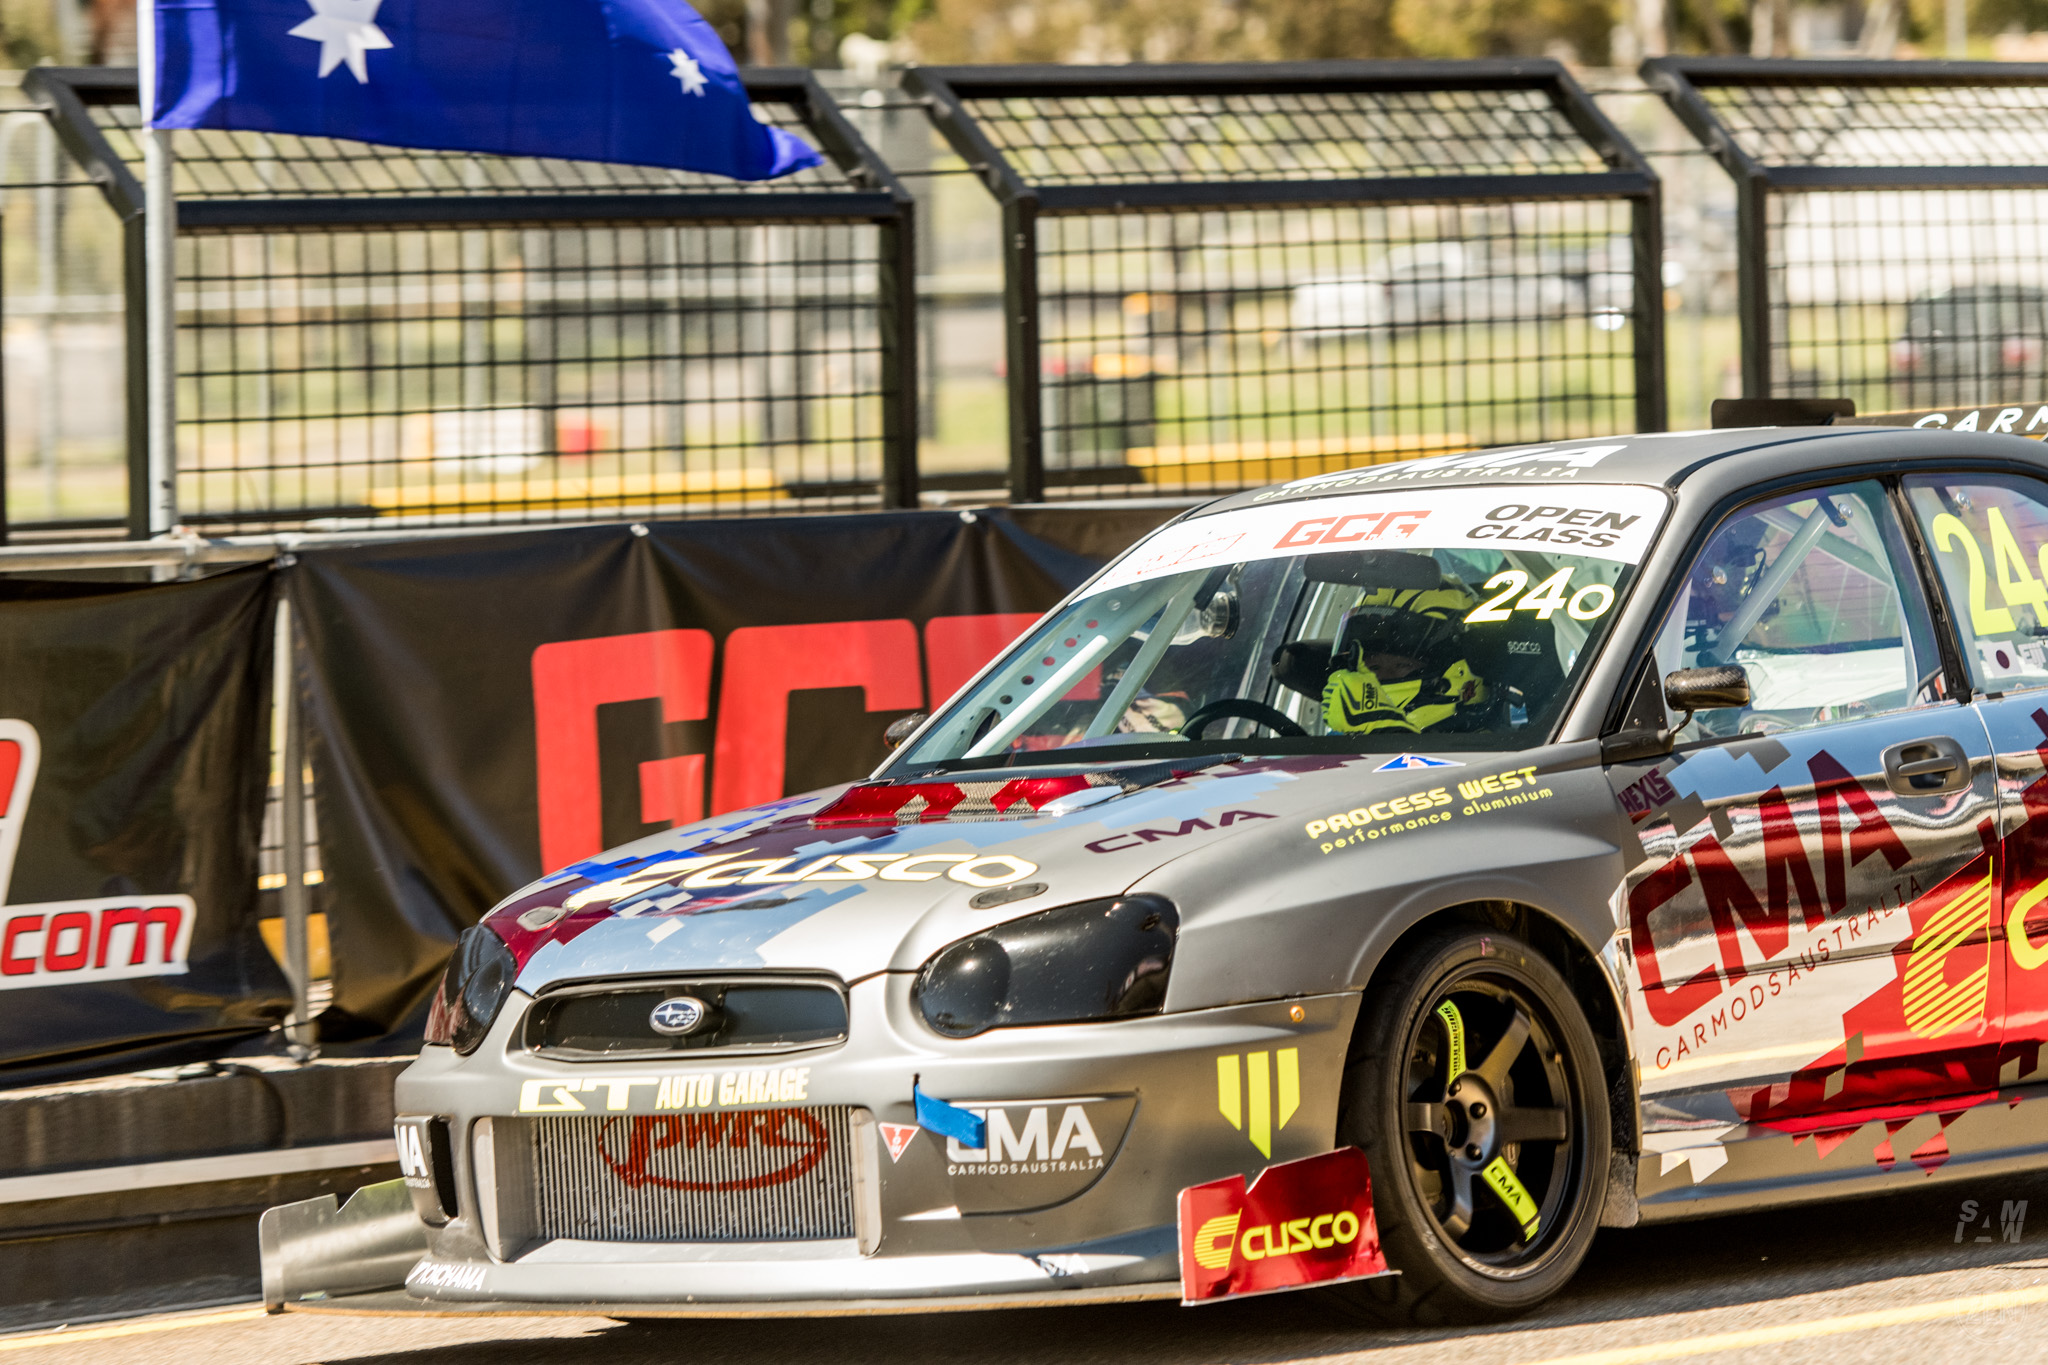 2019-10-18 - WTAC Day 01 048